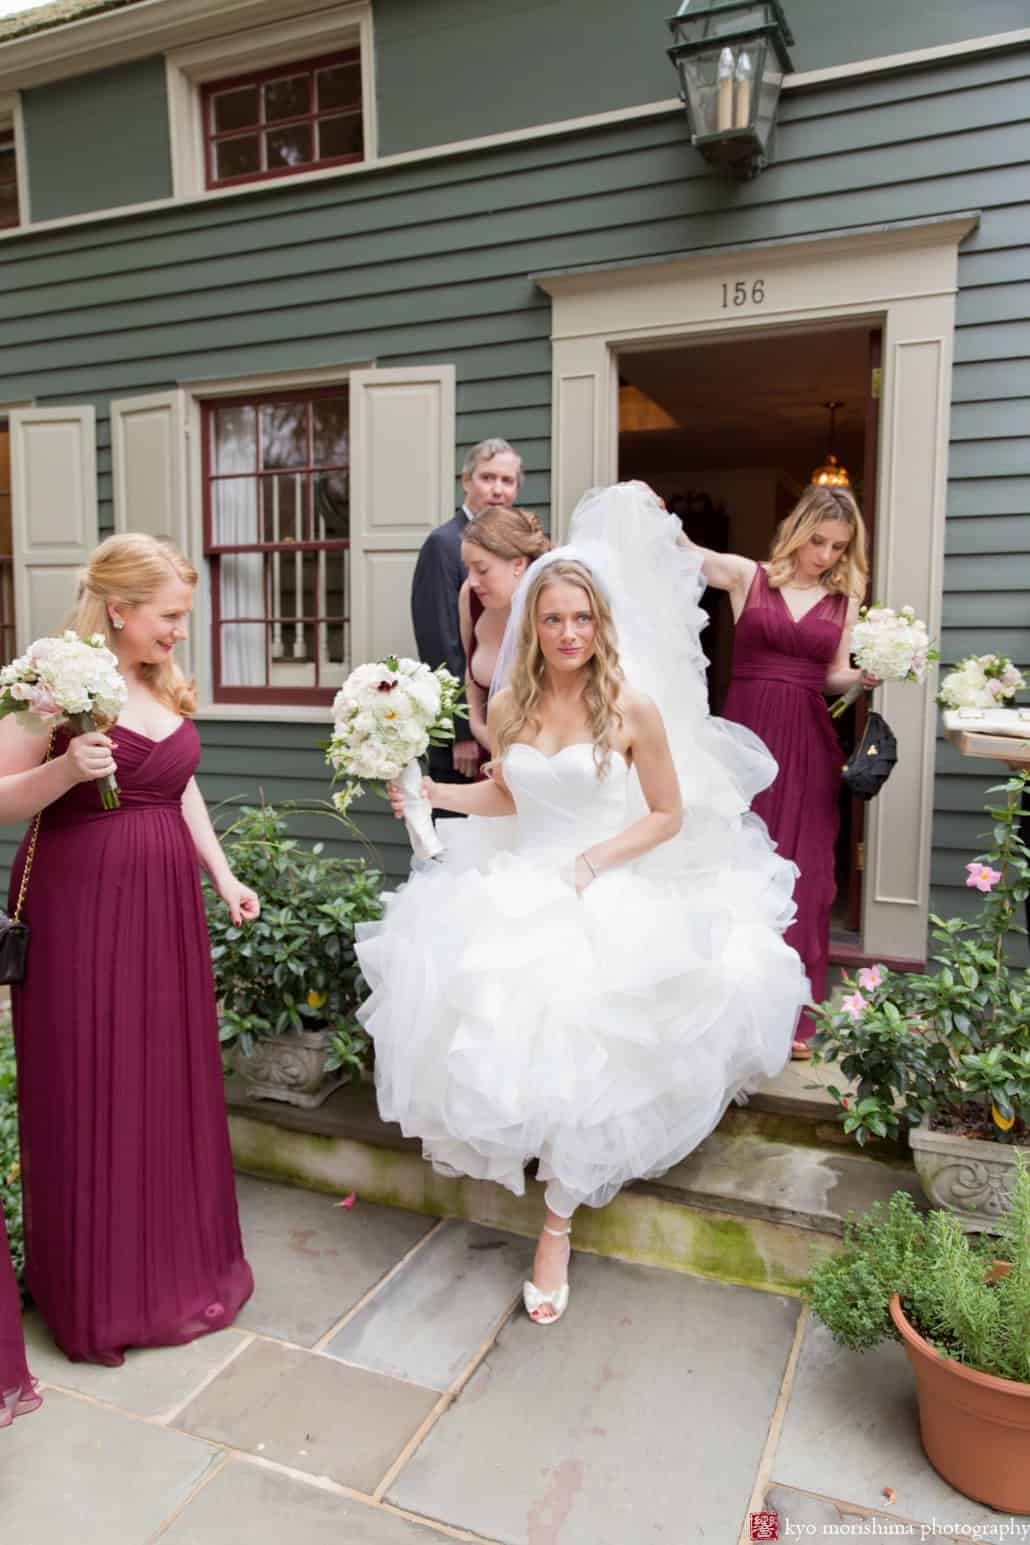 Bride emerges from grandparents' house wearing filmy ruffled Pronovias wedding gown